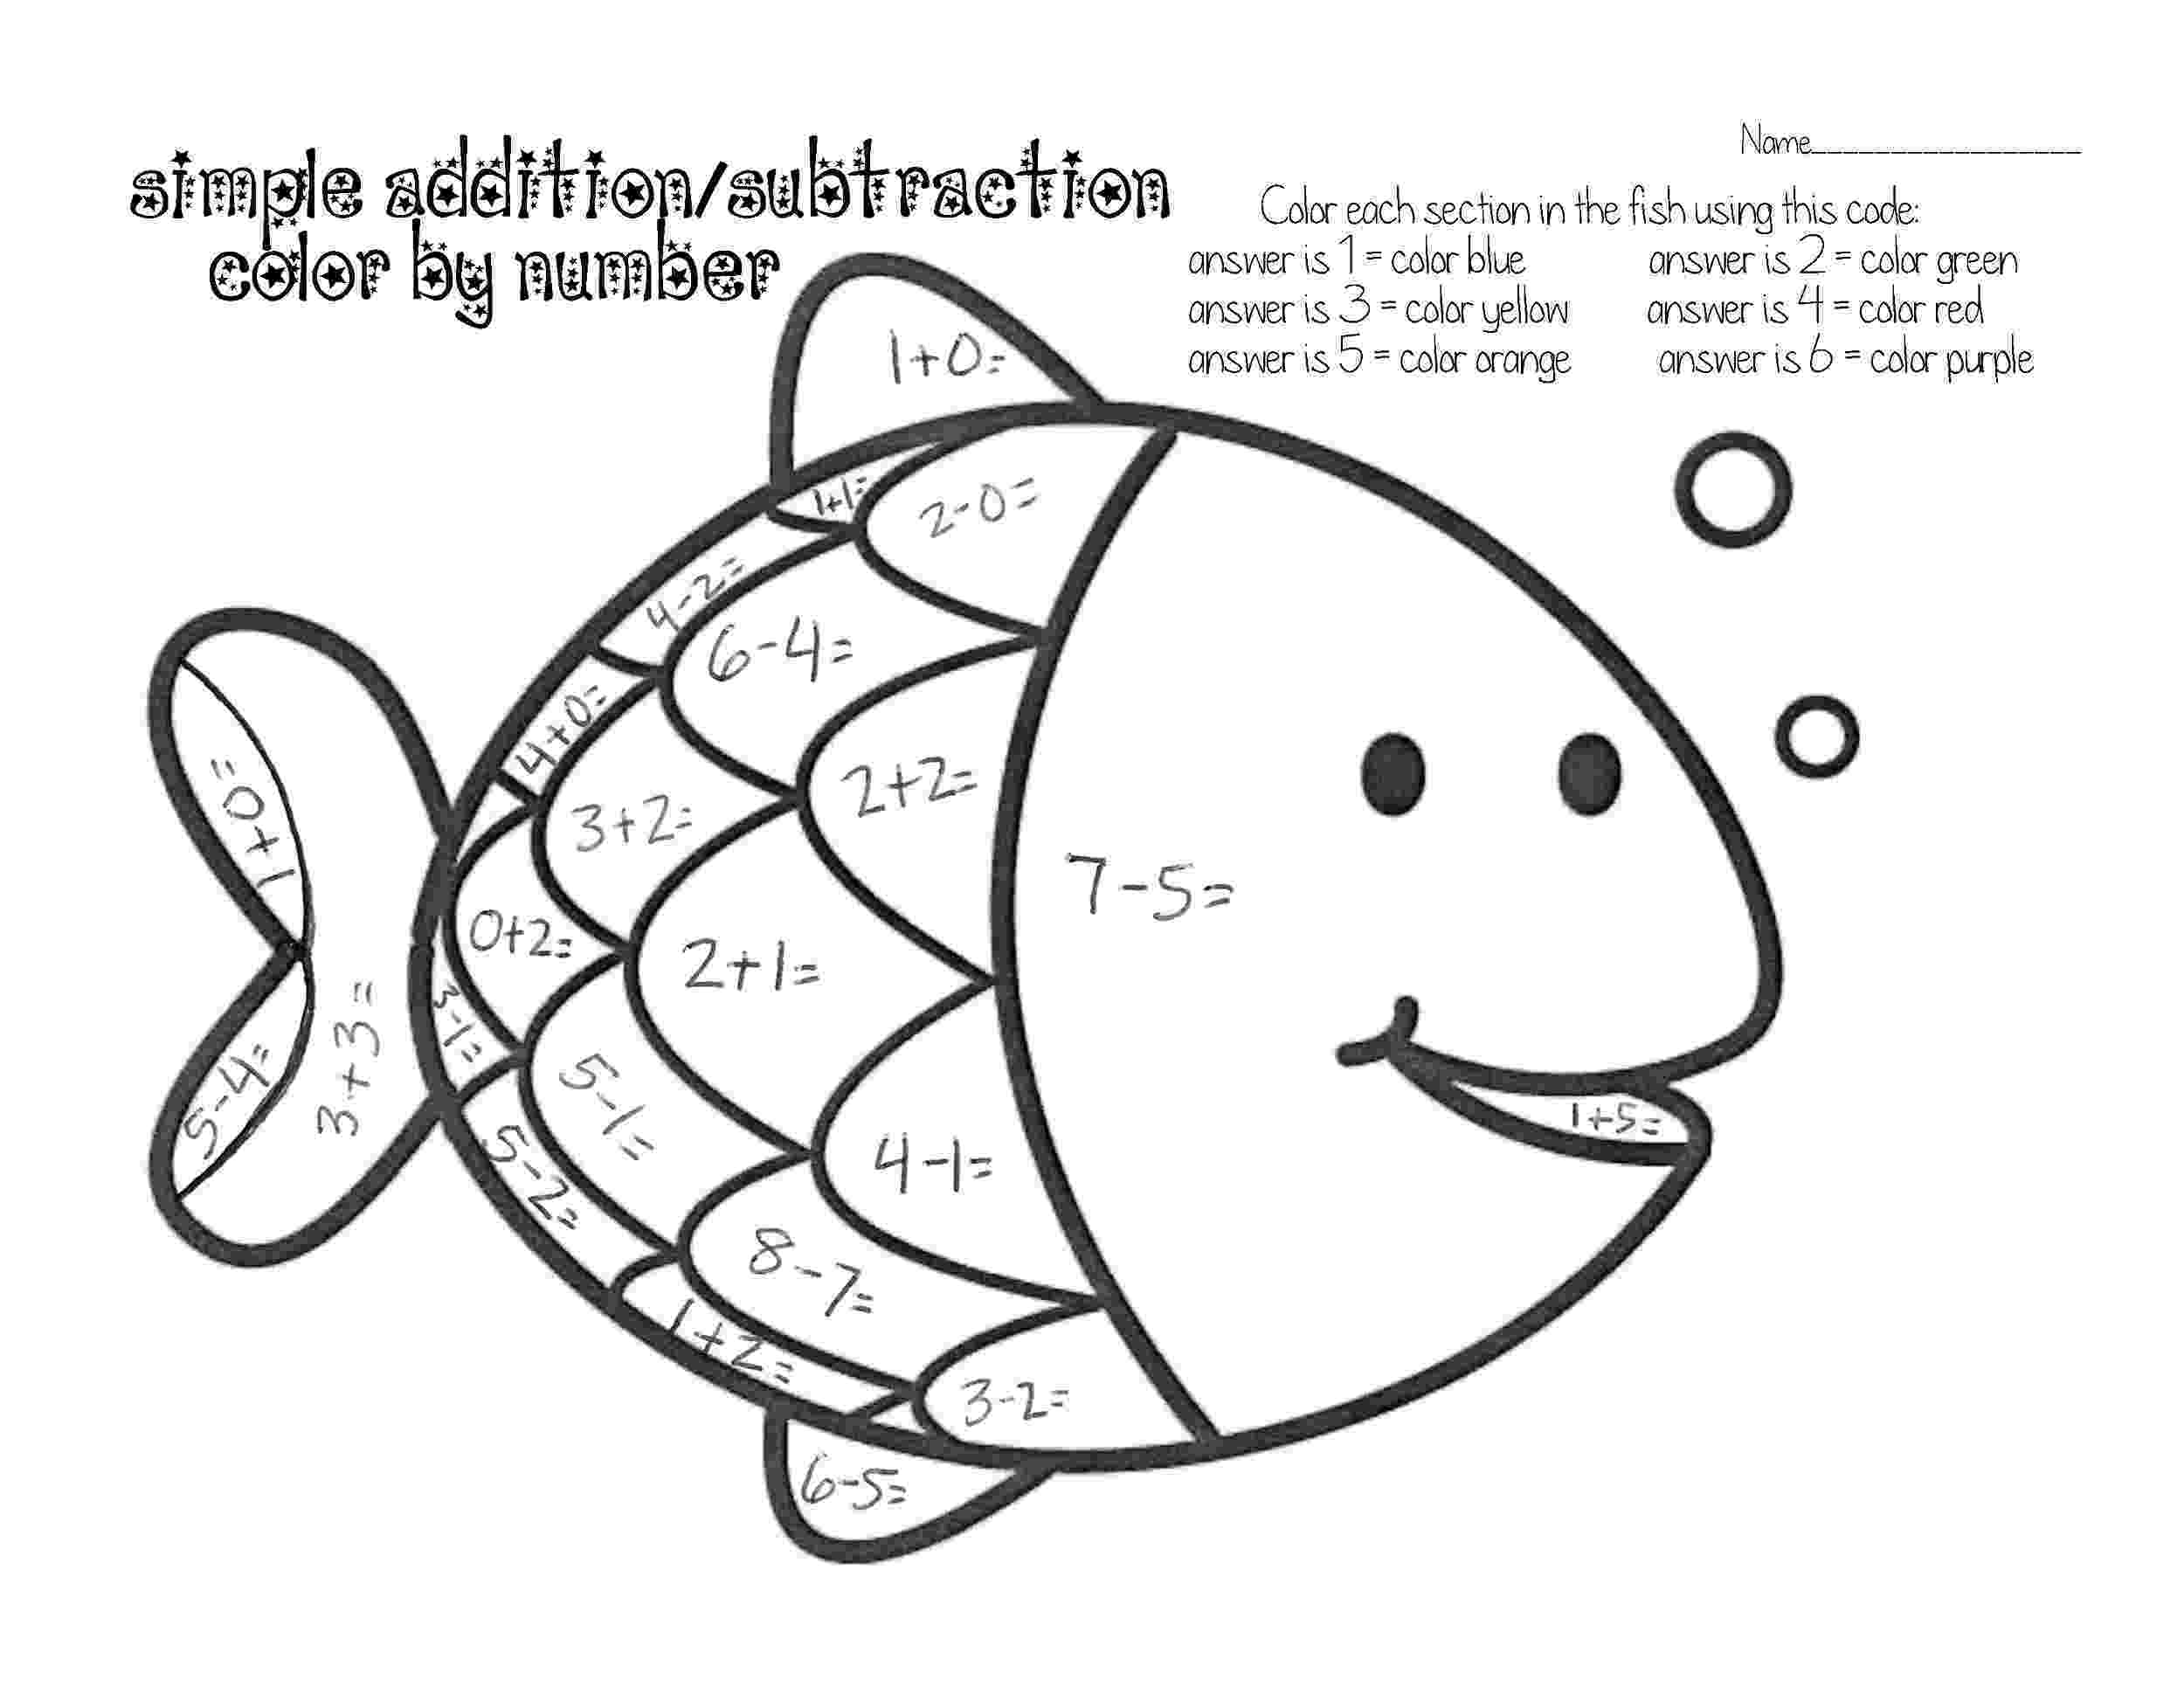 coloring by number worksheets 3 free pokemon color by number printable worksheets worksheets number by coloring